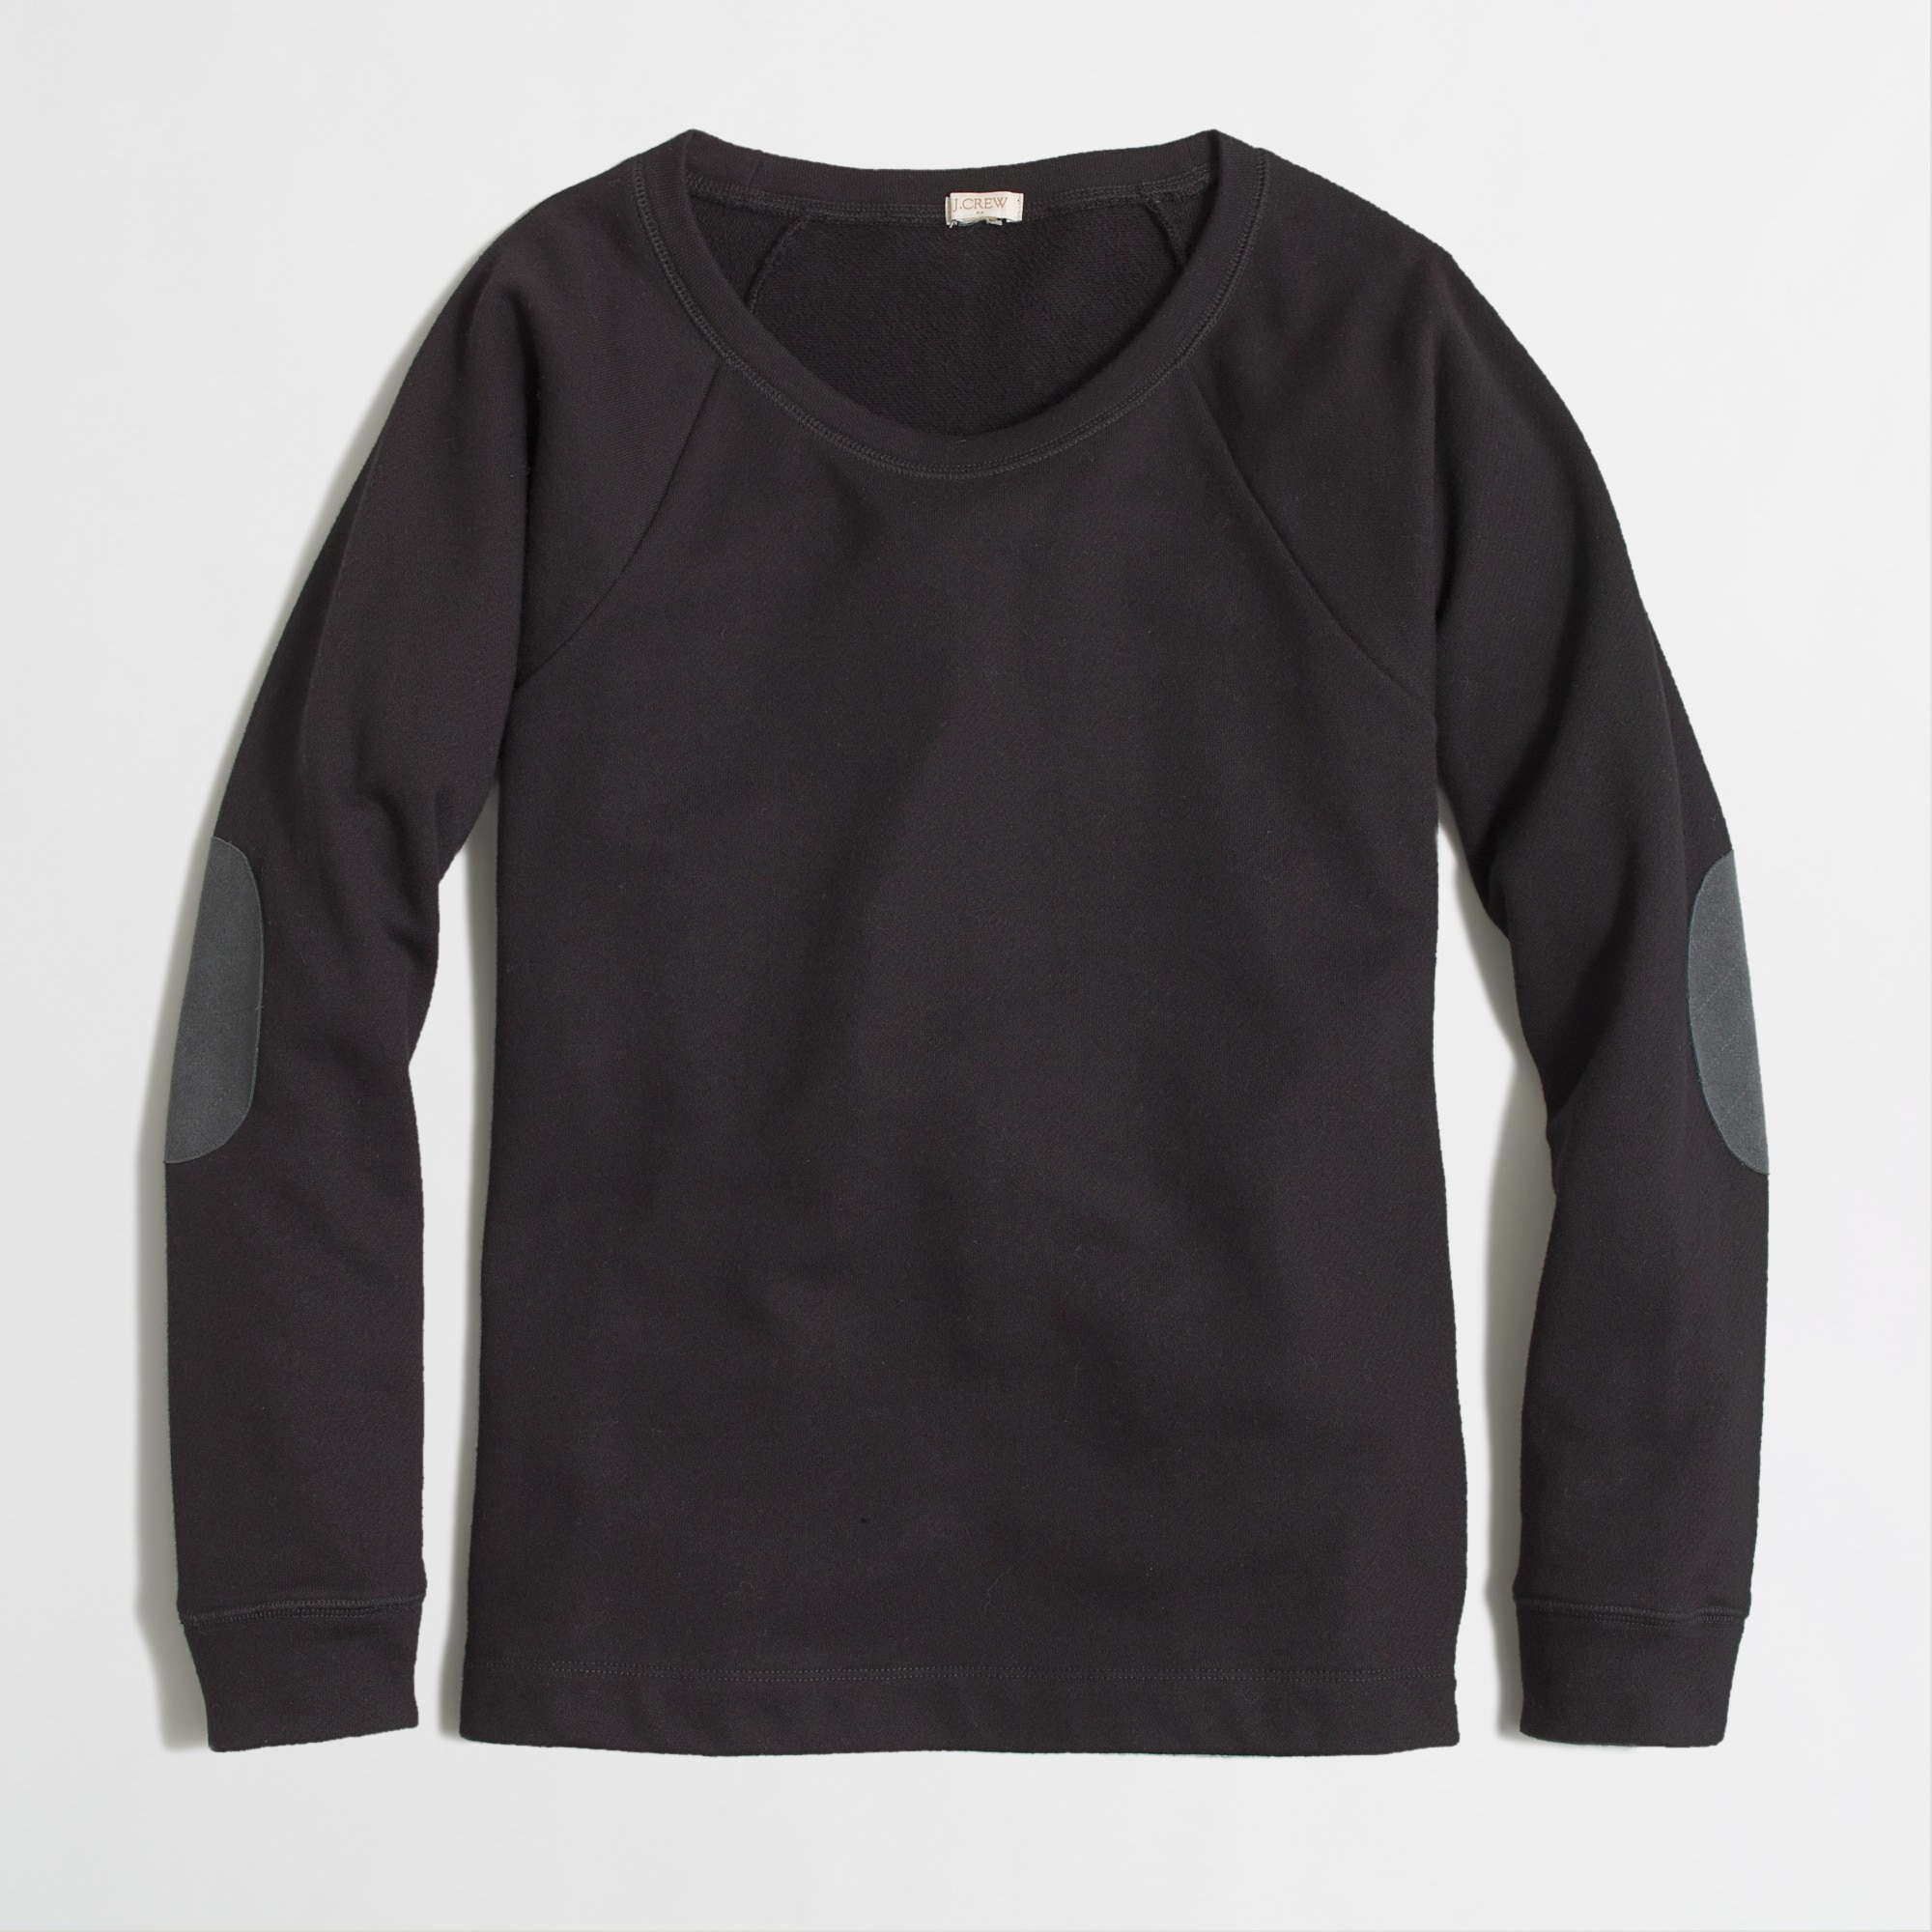 factory elbow-patch sweatshirt :